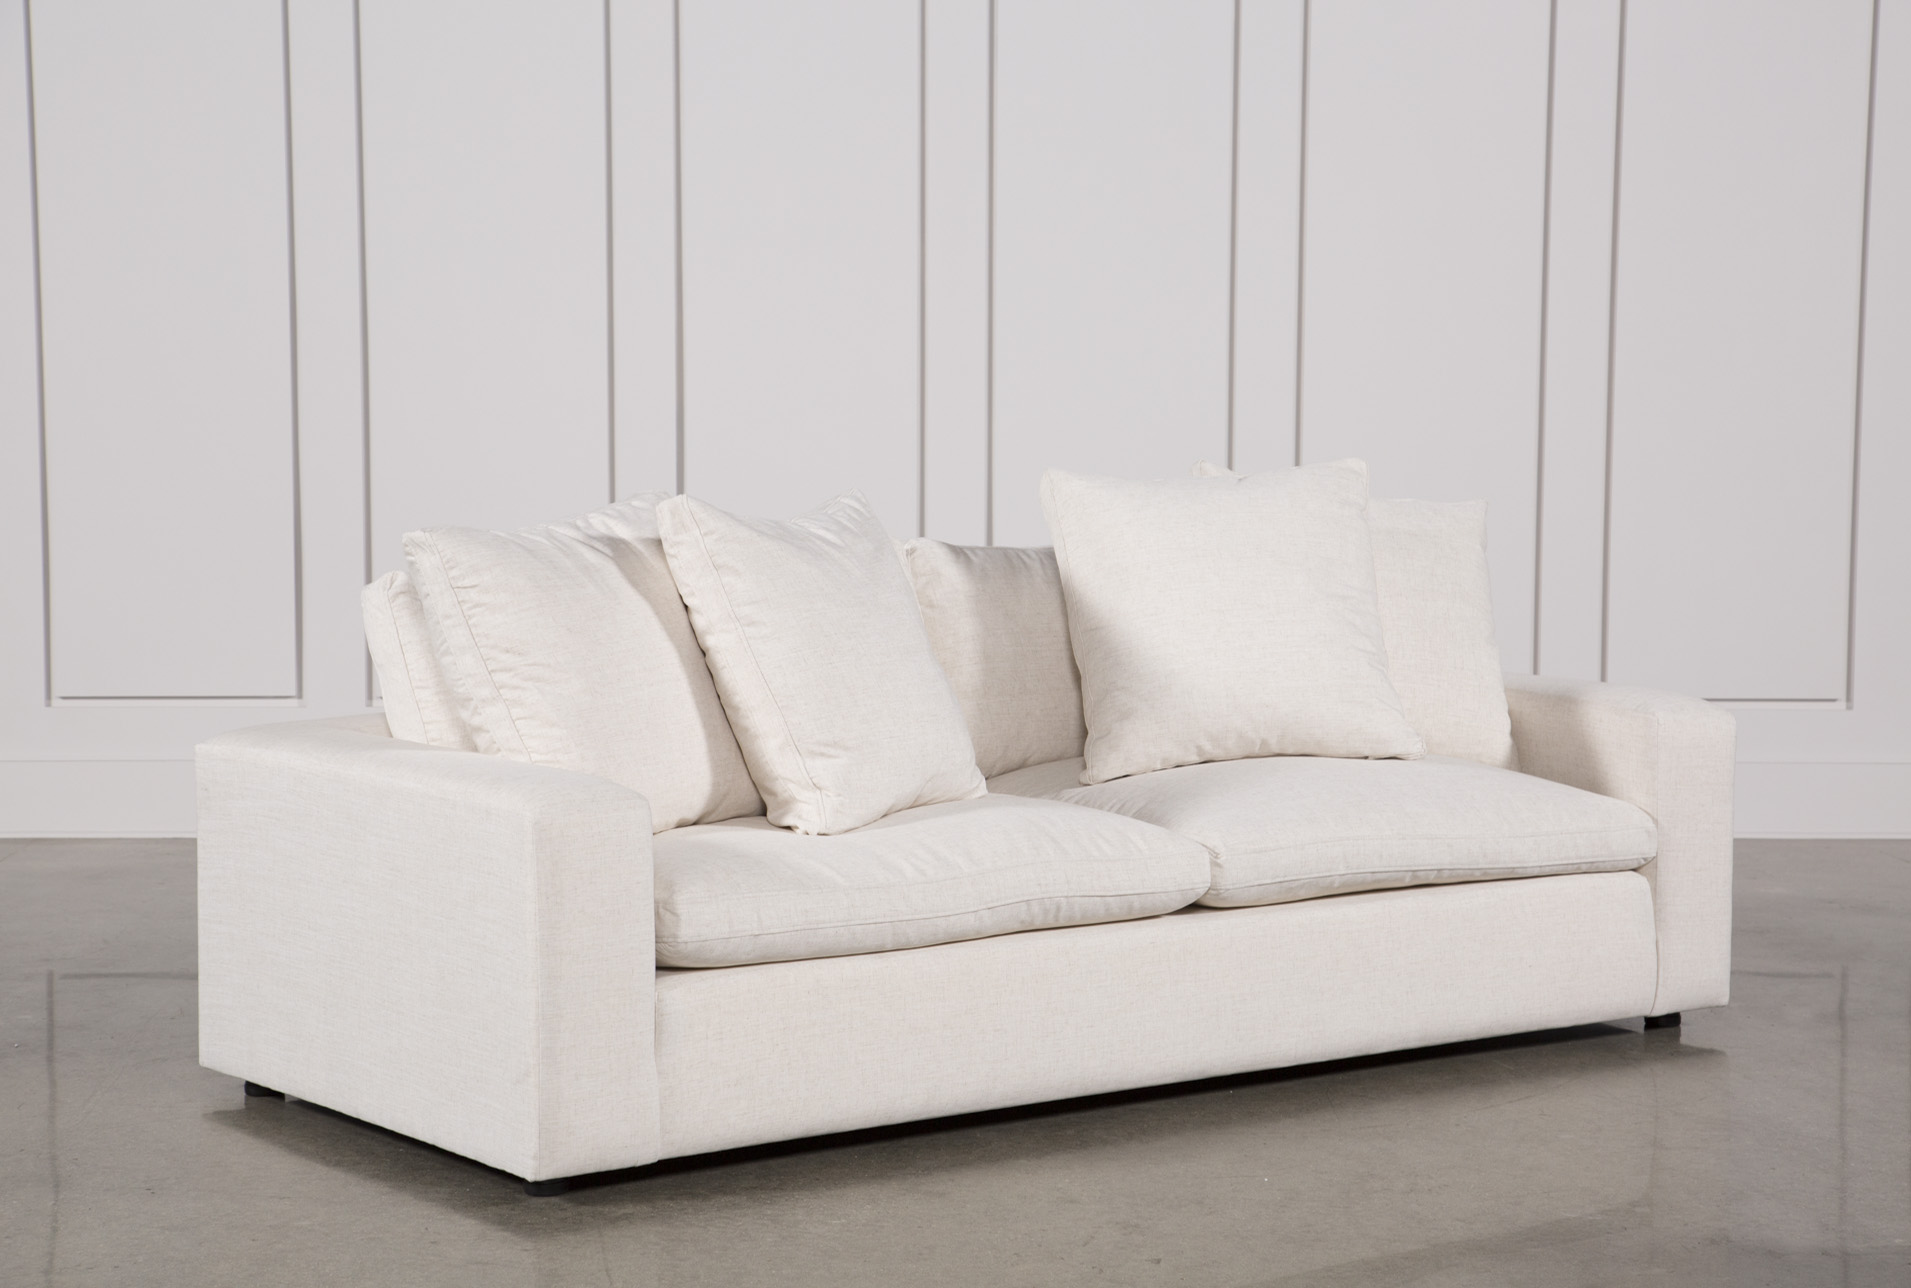 Haven Sofa (Qty: 1) Has Been Successfully Added To Your Cart.